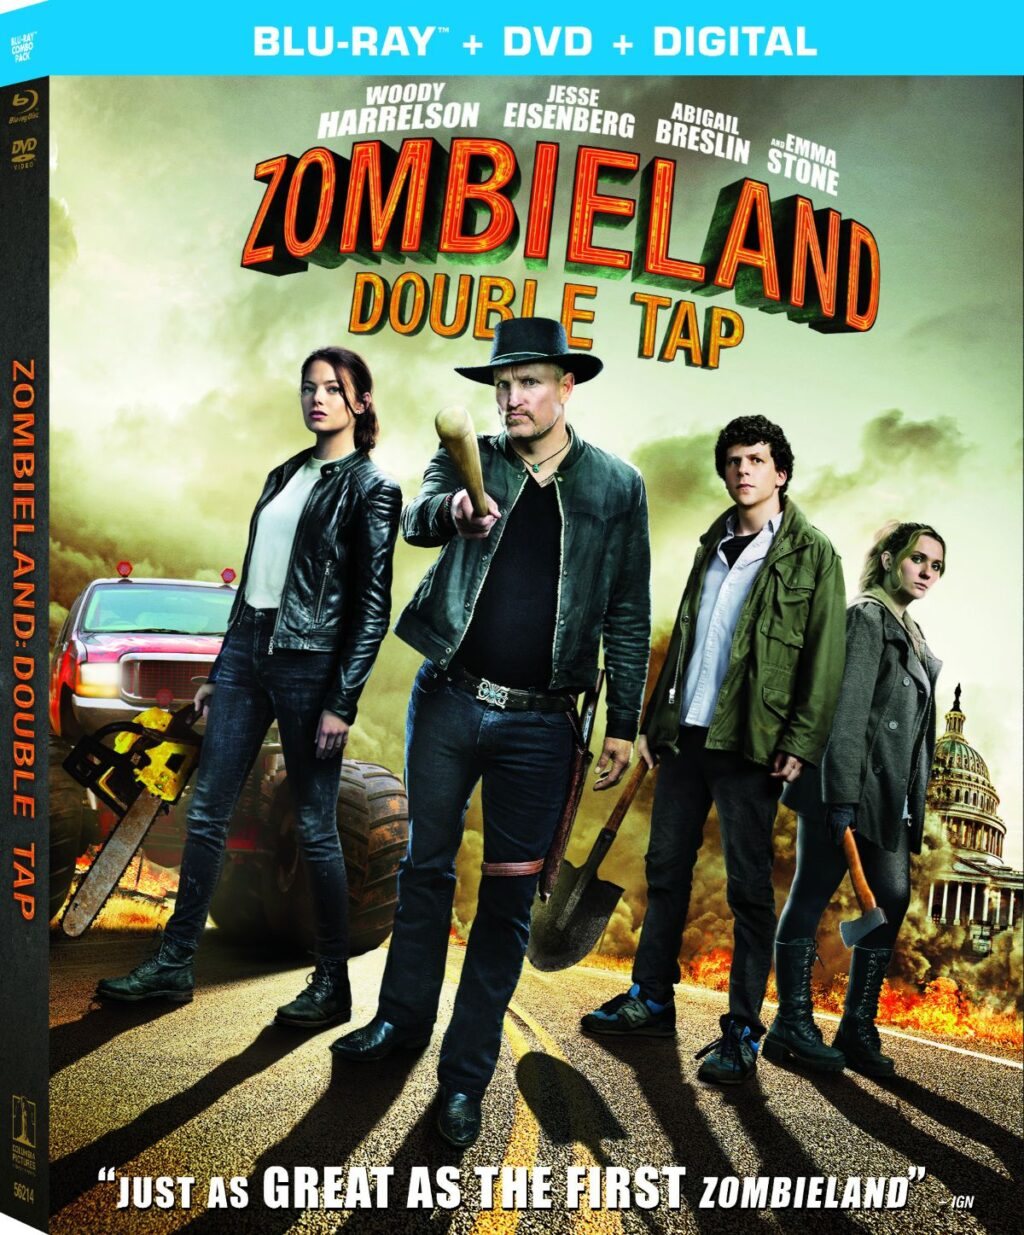 ZOMBIELAND DOUBLE TAP Blu ray DC 1024x1235 - ZOMBIELAND: DOUBLE TAP Hits Blu-ray in January